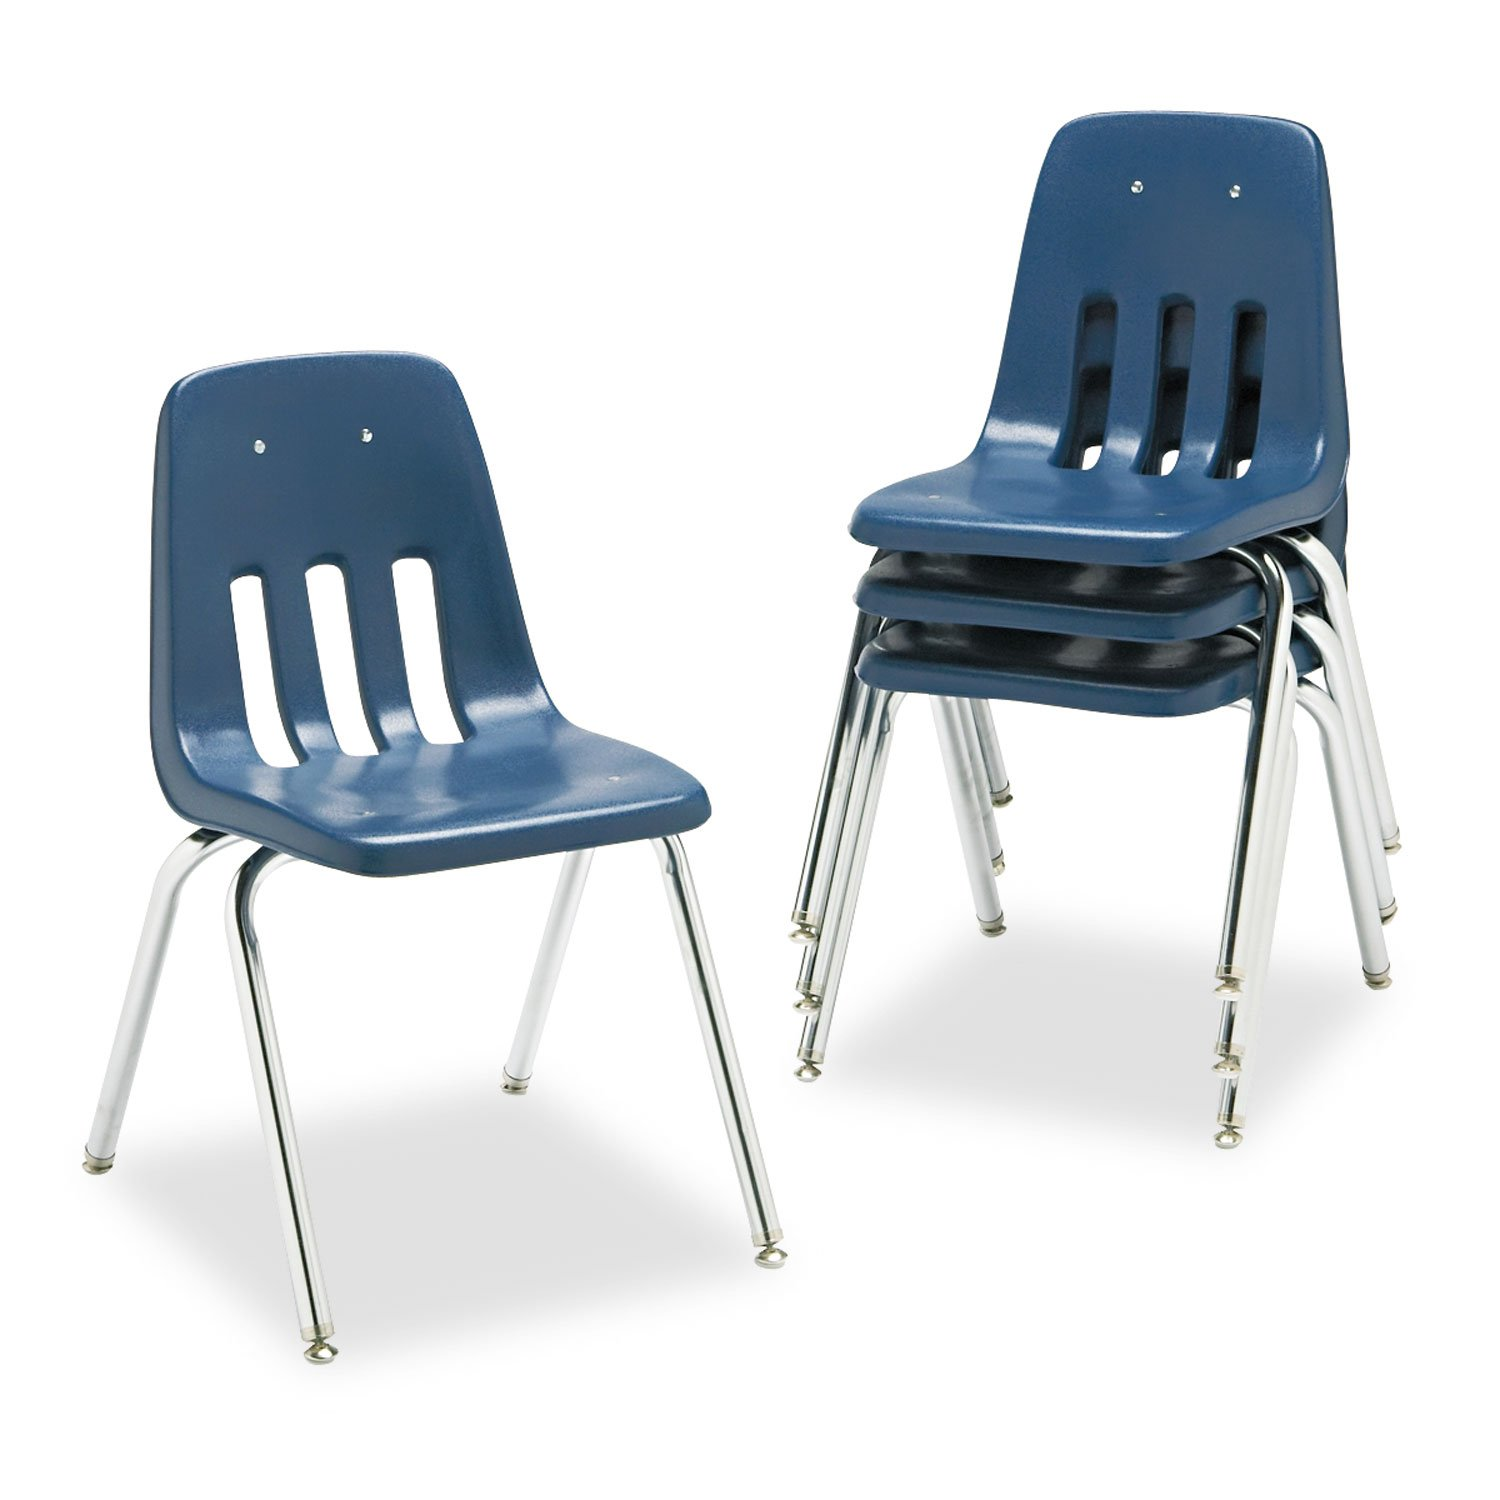 Virco Student Chair, Navy, Soft Plastic Shell, 18'' Seat Height, Chrome Frame, for 5th Grade to Adults, 4 Pack (9018-BLU51) by Virco